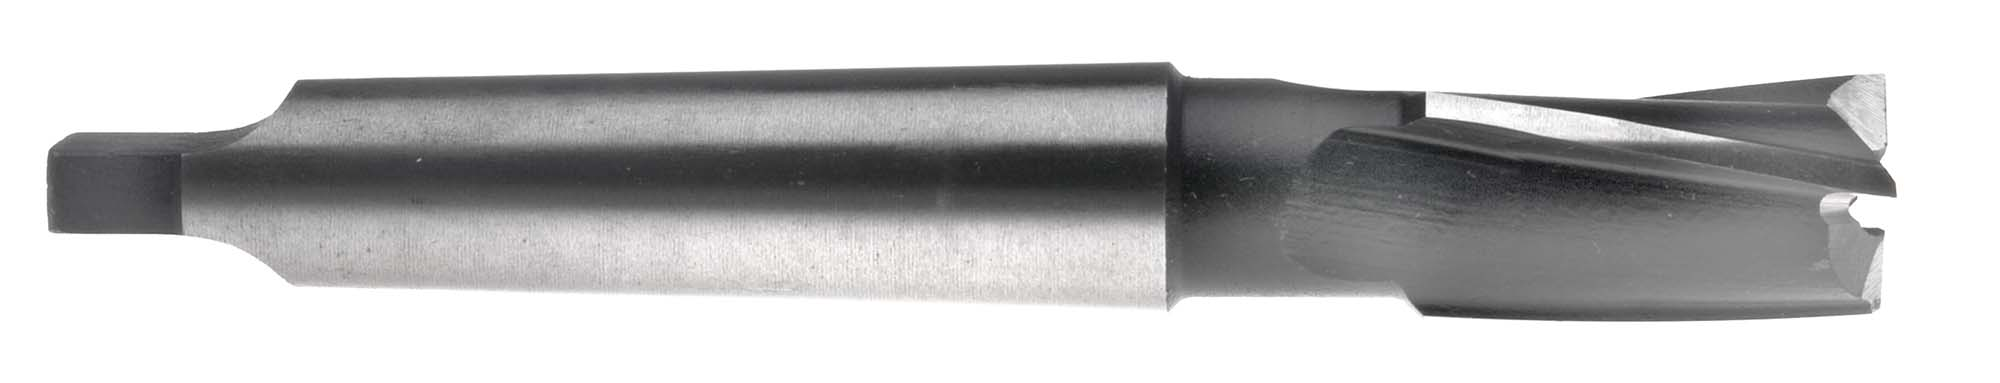 "1-1/8"" Taper Shank Counterbore, Interchangeable Pilot Type, High Speed Steel"